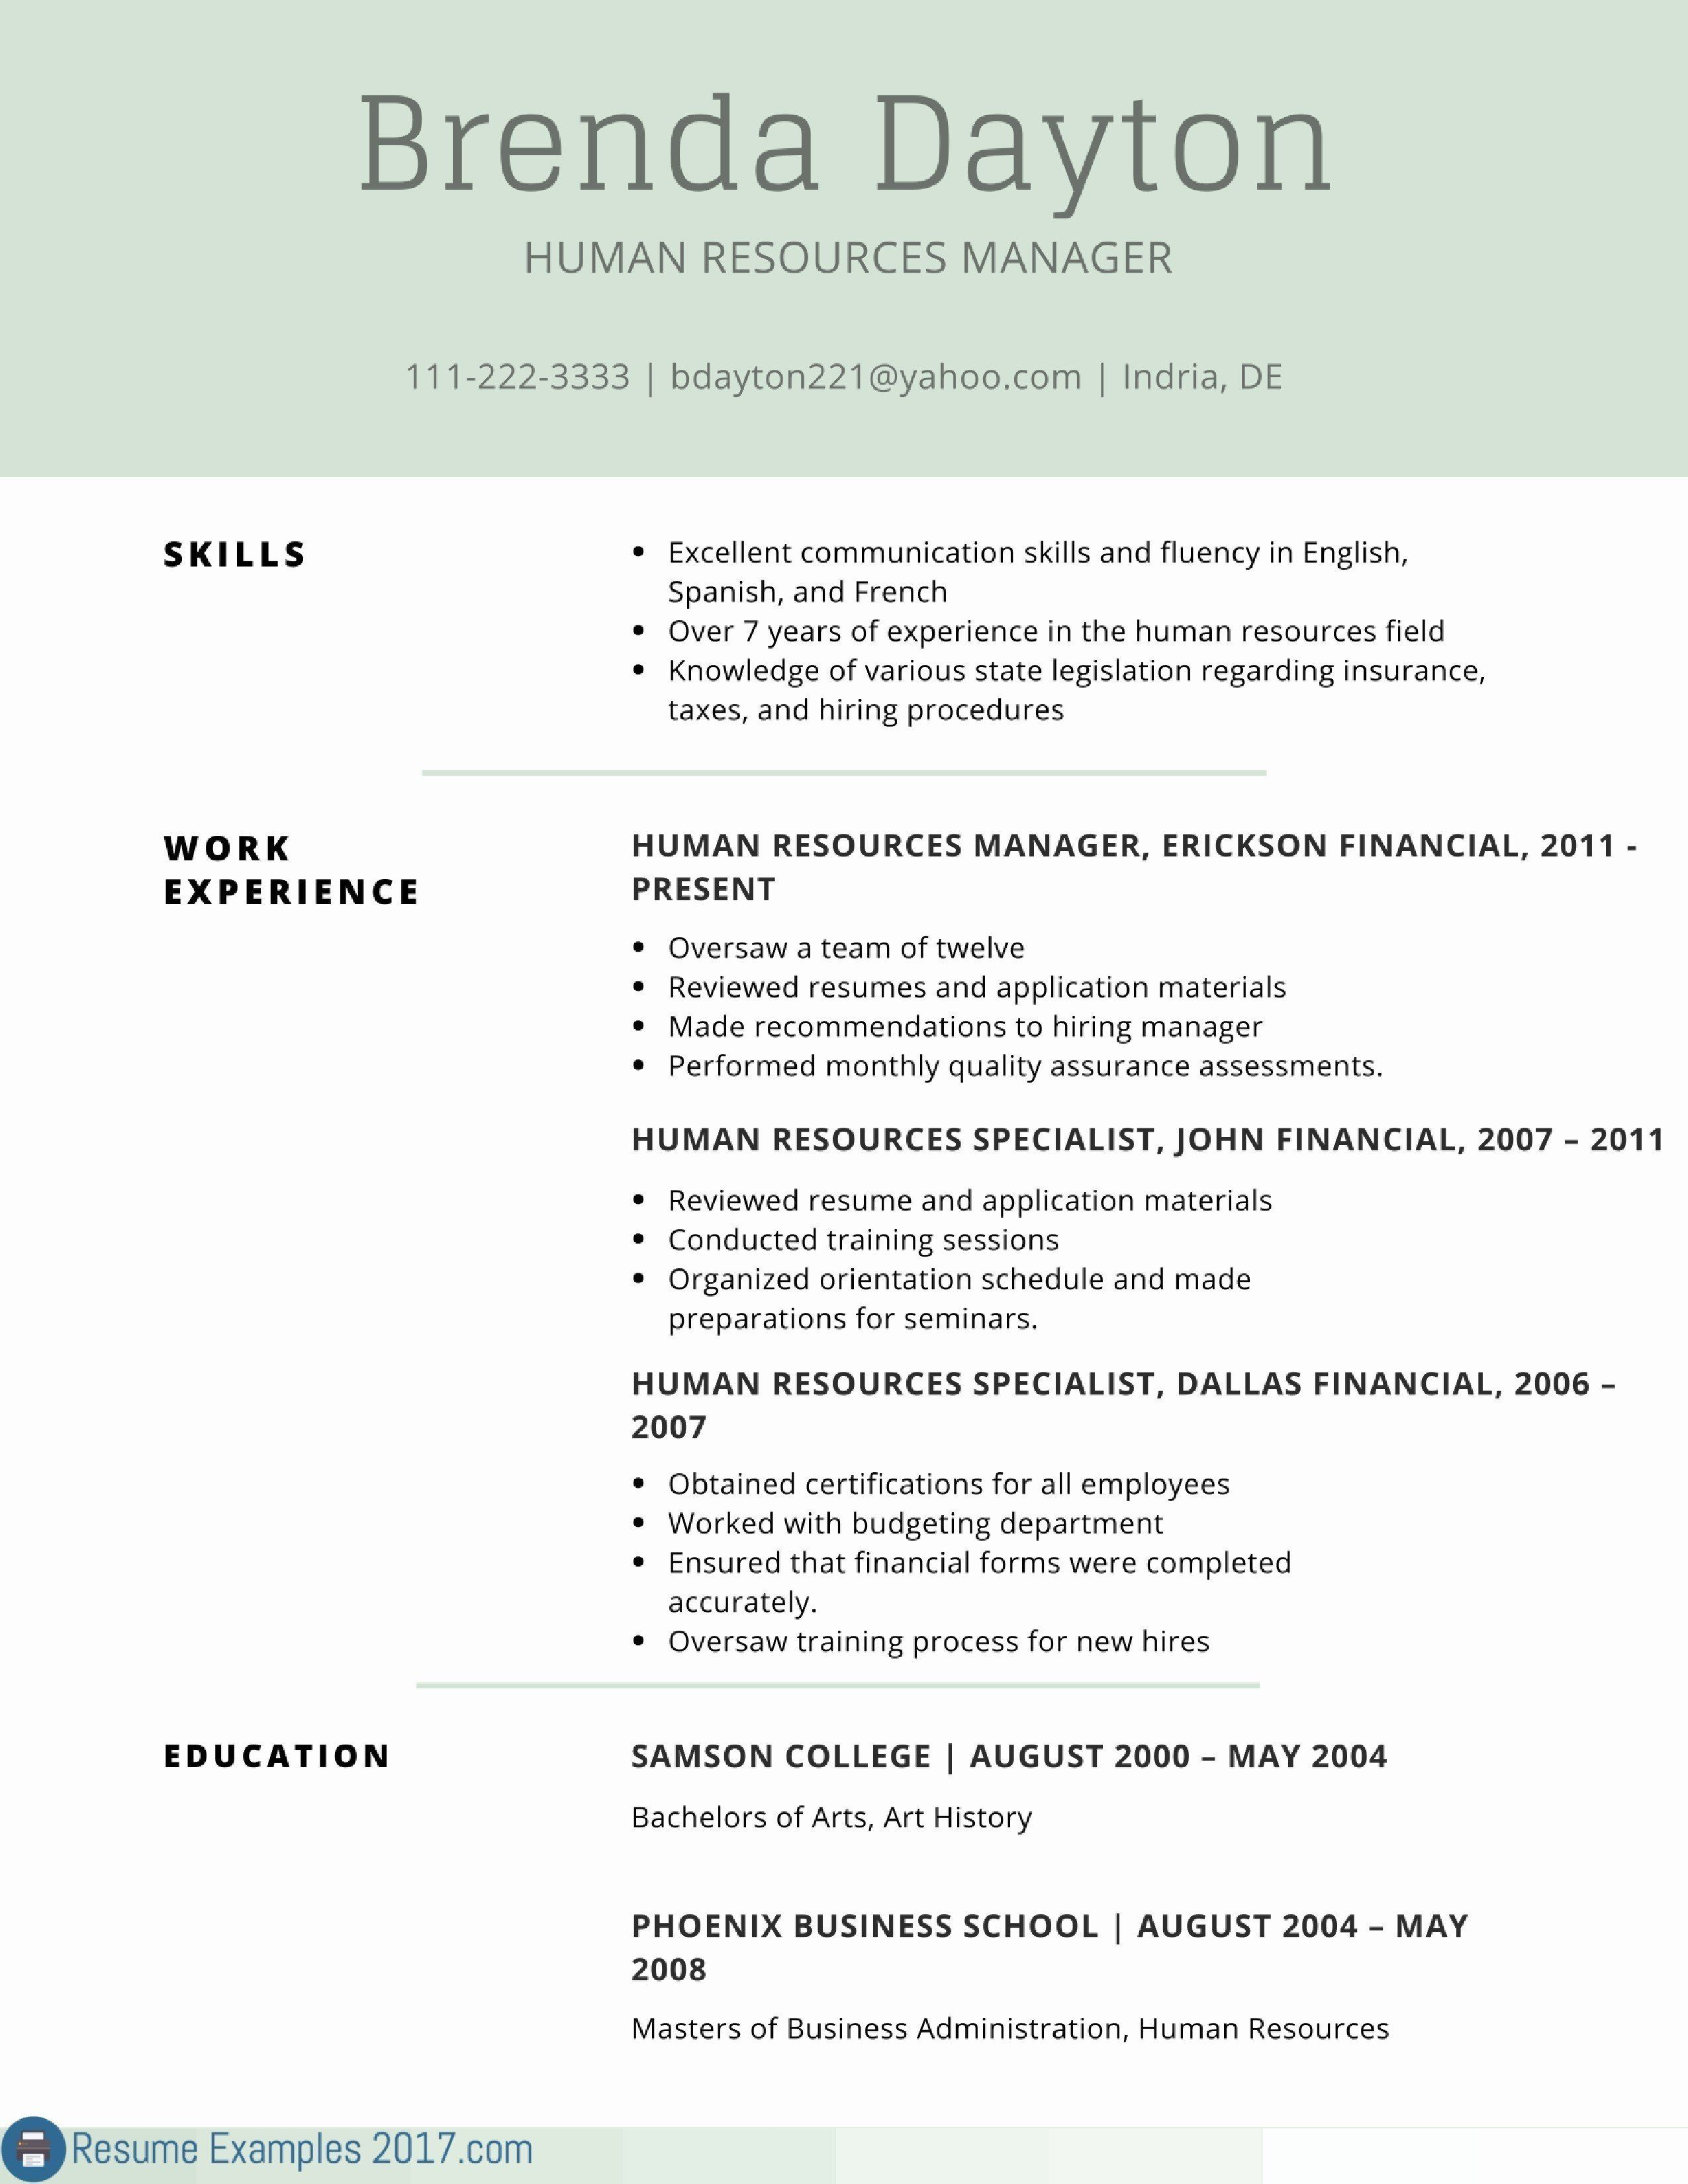 Teaching Skills For Resume Luxury Resume Headline Examples For Teacher Unique S Whats A In 2020 Job Resume Examples Resume Examples Resume Skills